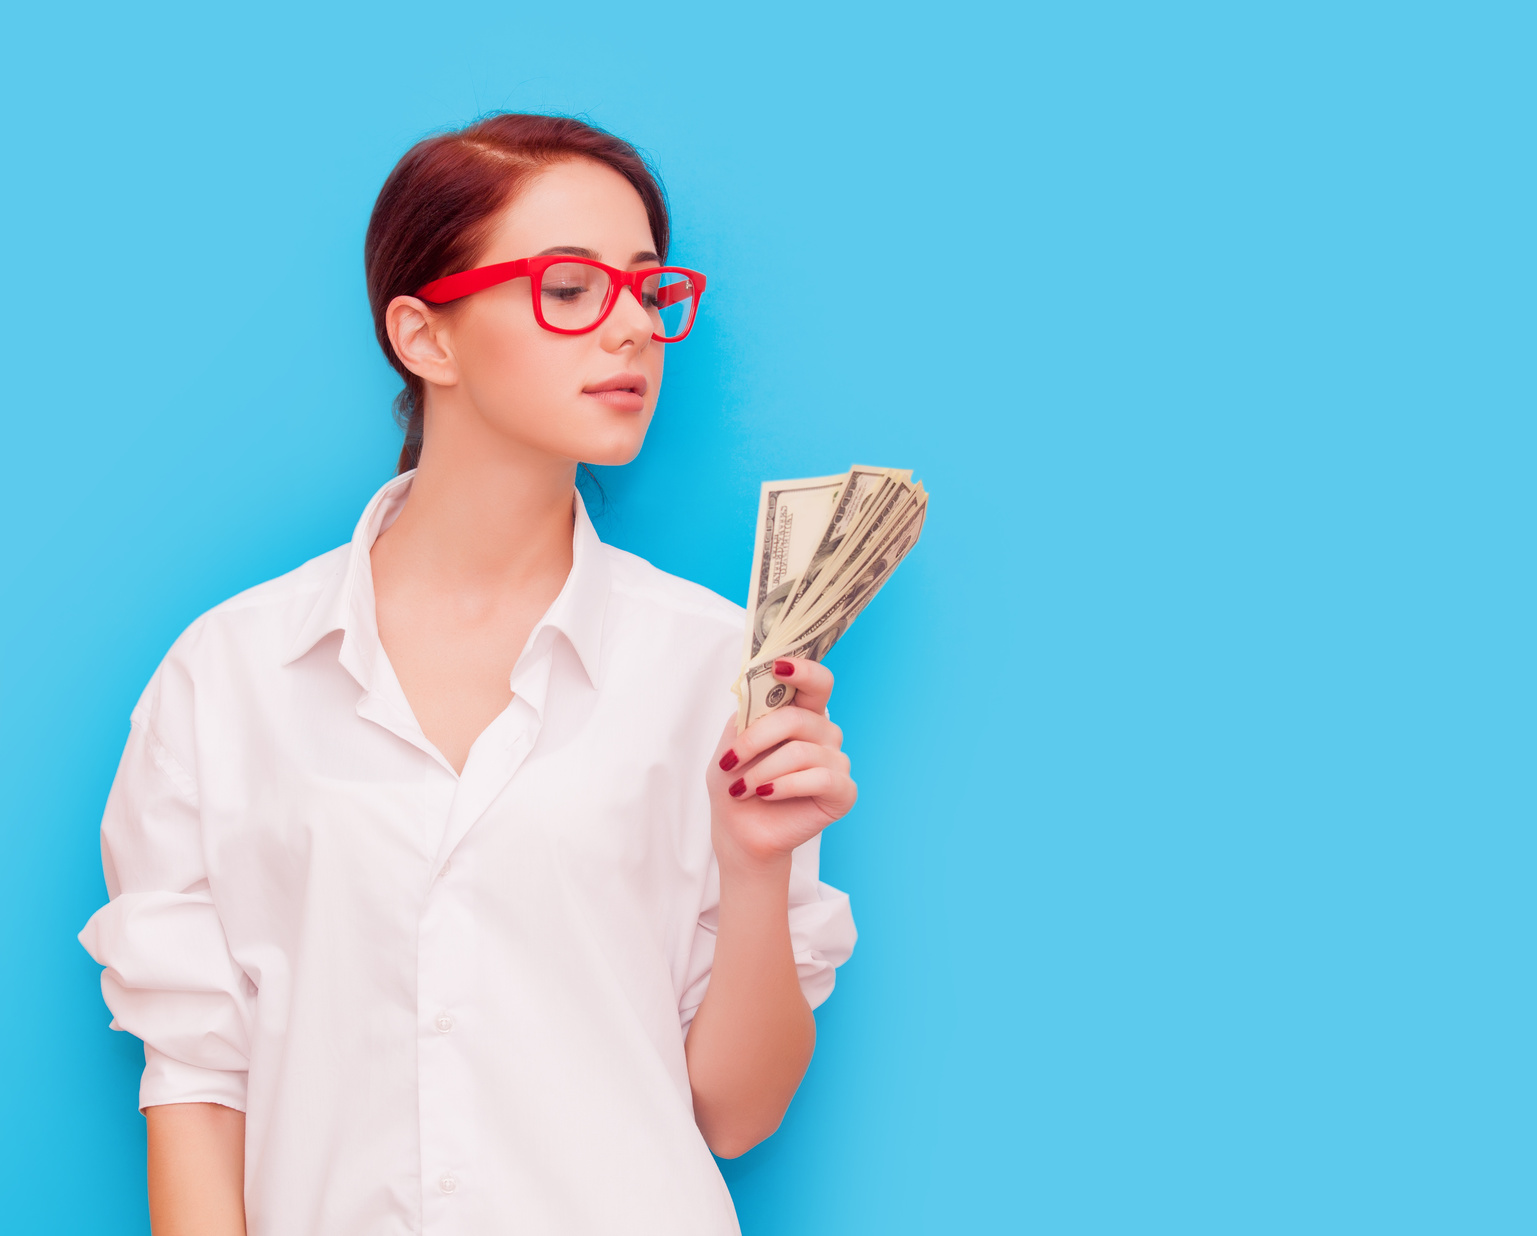 Portrait of redhead woman in red glasses with money on blue background